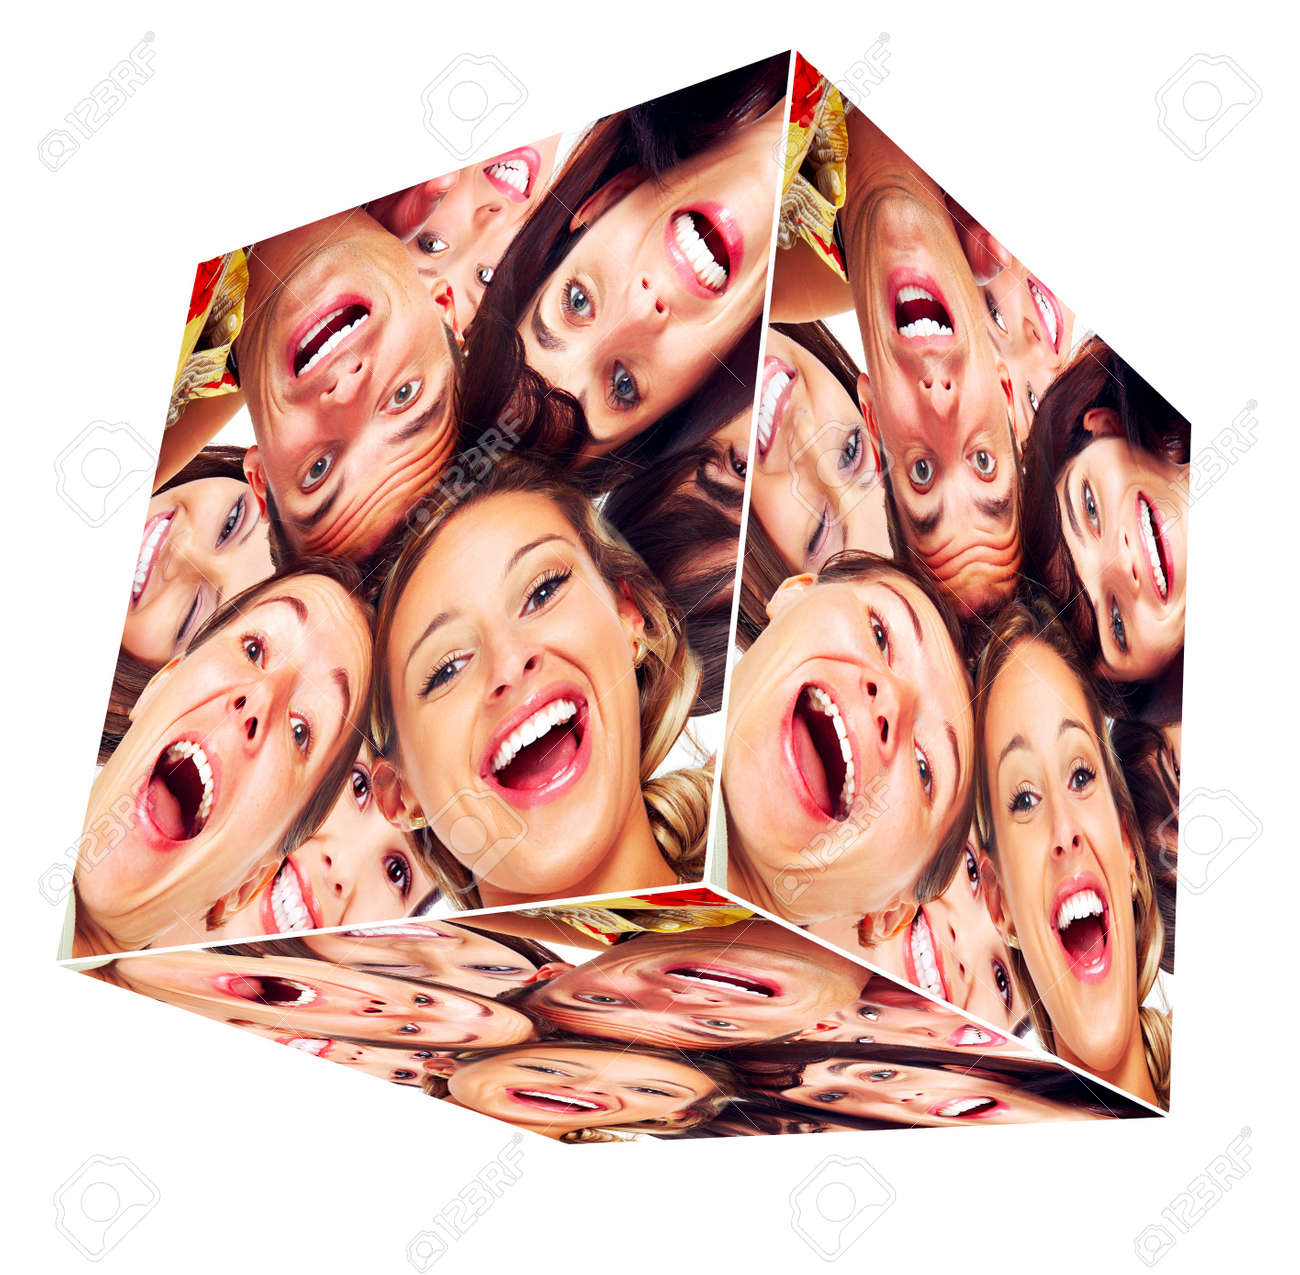 People smile cube collage Stock Photo - 13541296